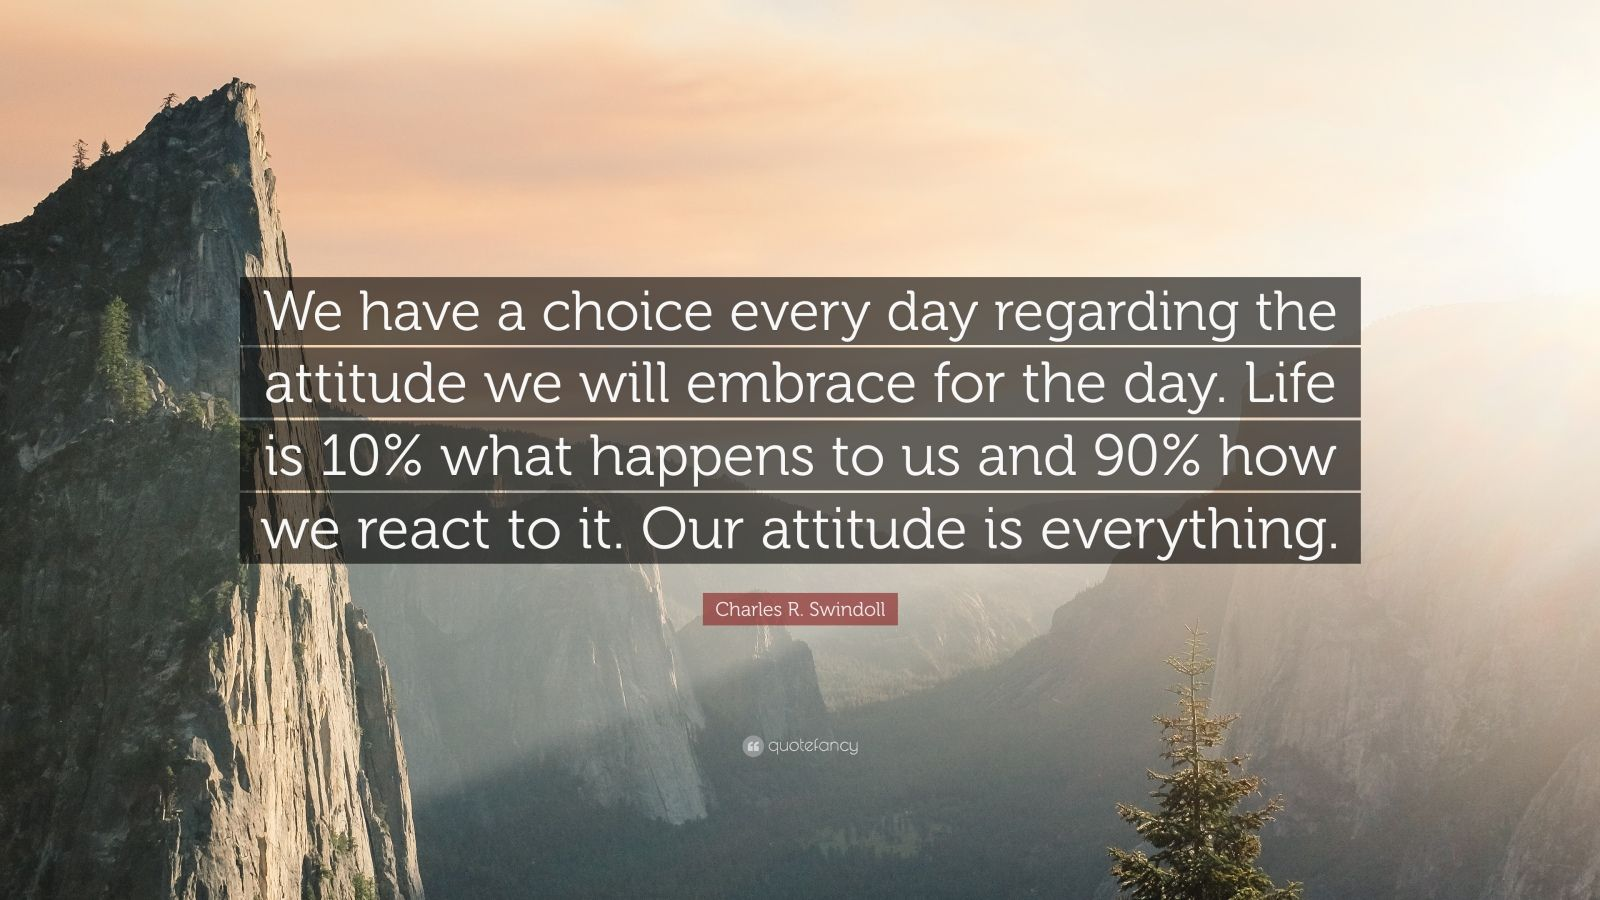 """Charles R. Swindoll Quote: """"We have a choice every day regarding the attitude we will embrace for the day. Life is 10% what happens to us and 90% how we react to it. Our attitude is everything."""""""